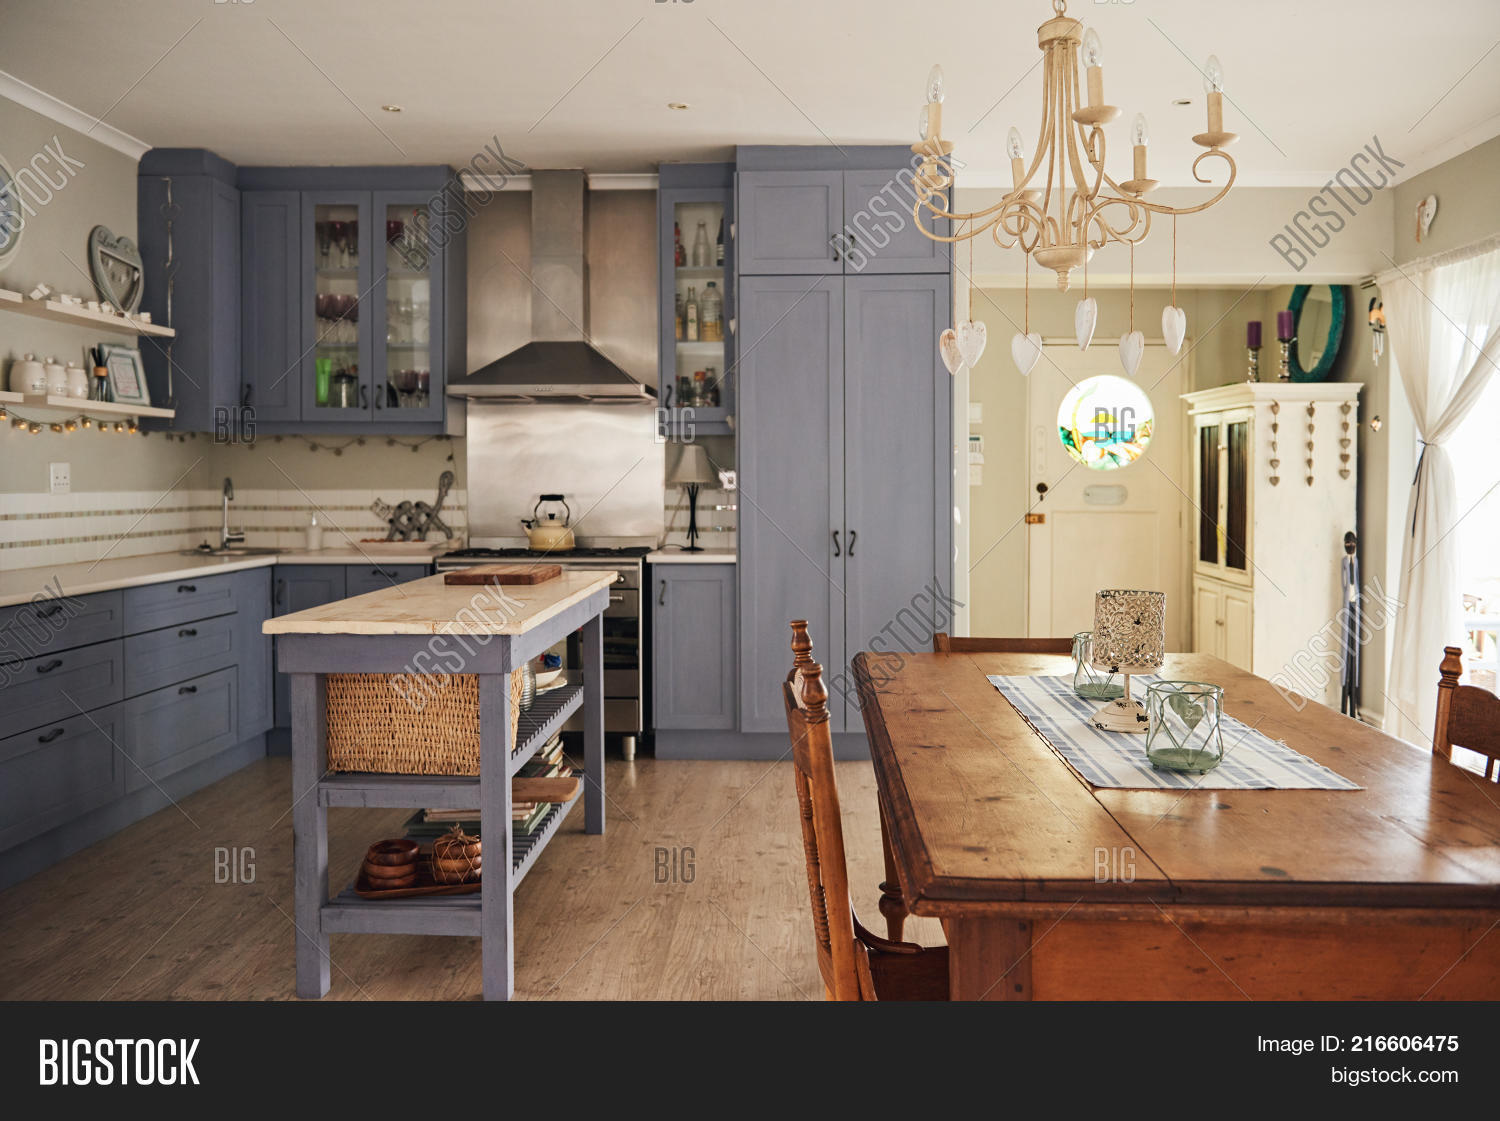 Interior Country Style Image & Photo (Free Trial) | Bigstock